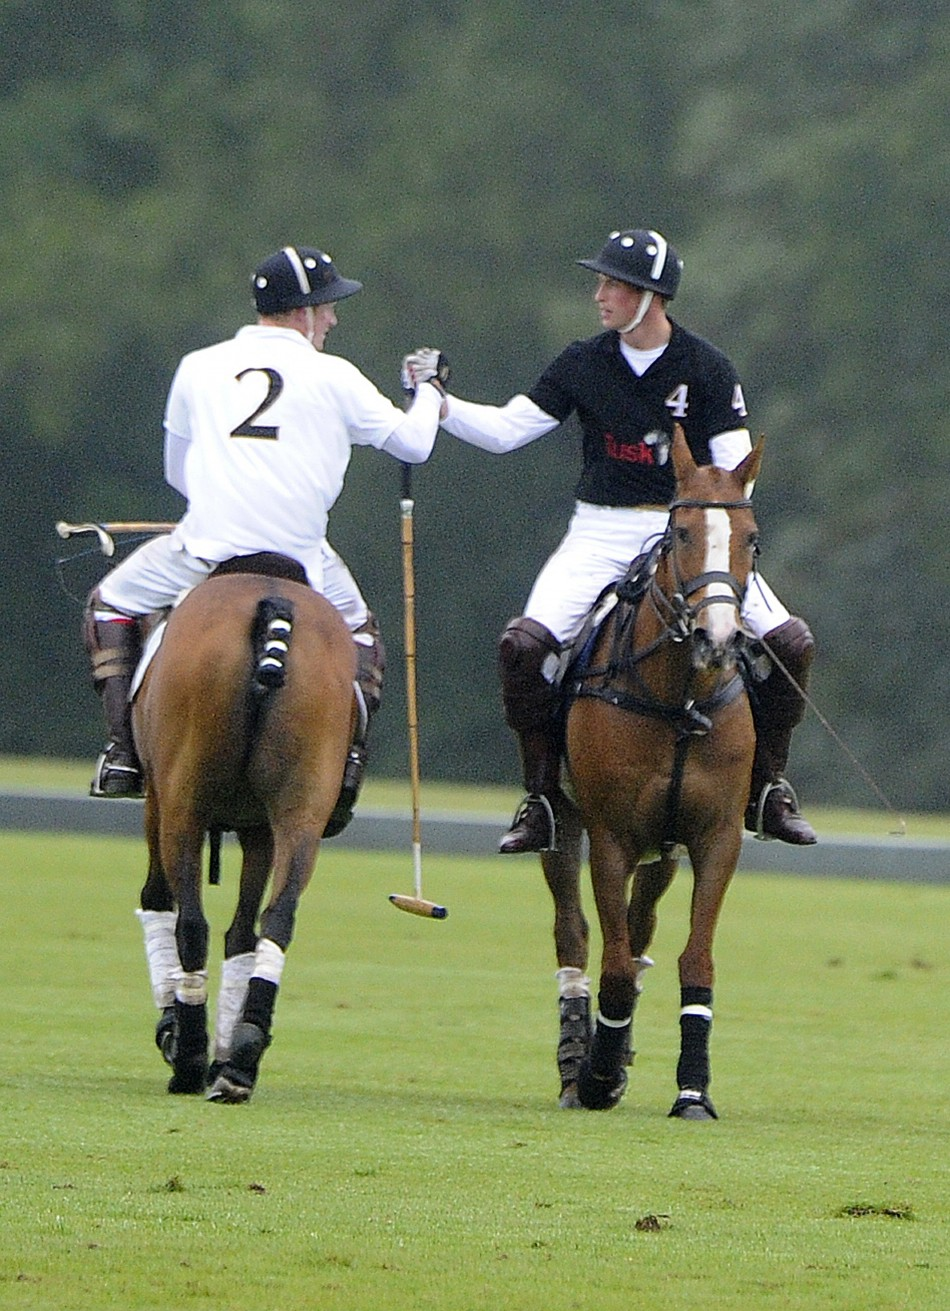 Britains Prince William and Prince Harry shake hands after playing polo against one another during the Sentebale Cup at Coworth park, Berkshire